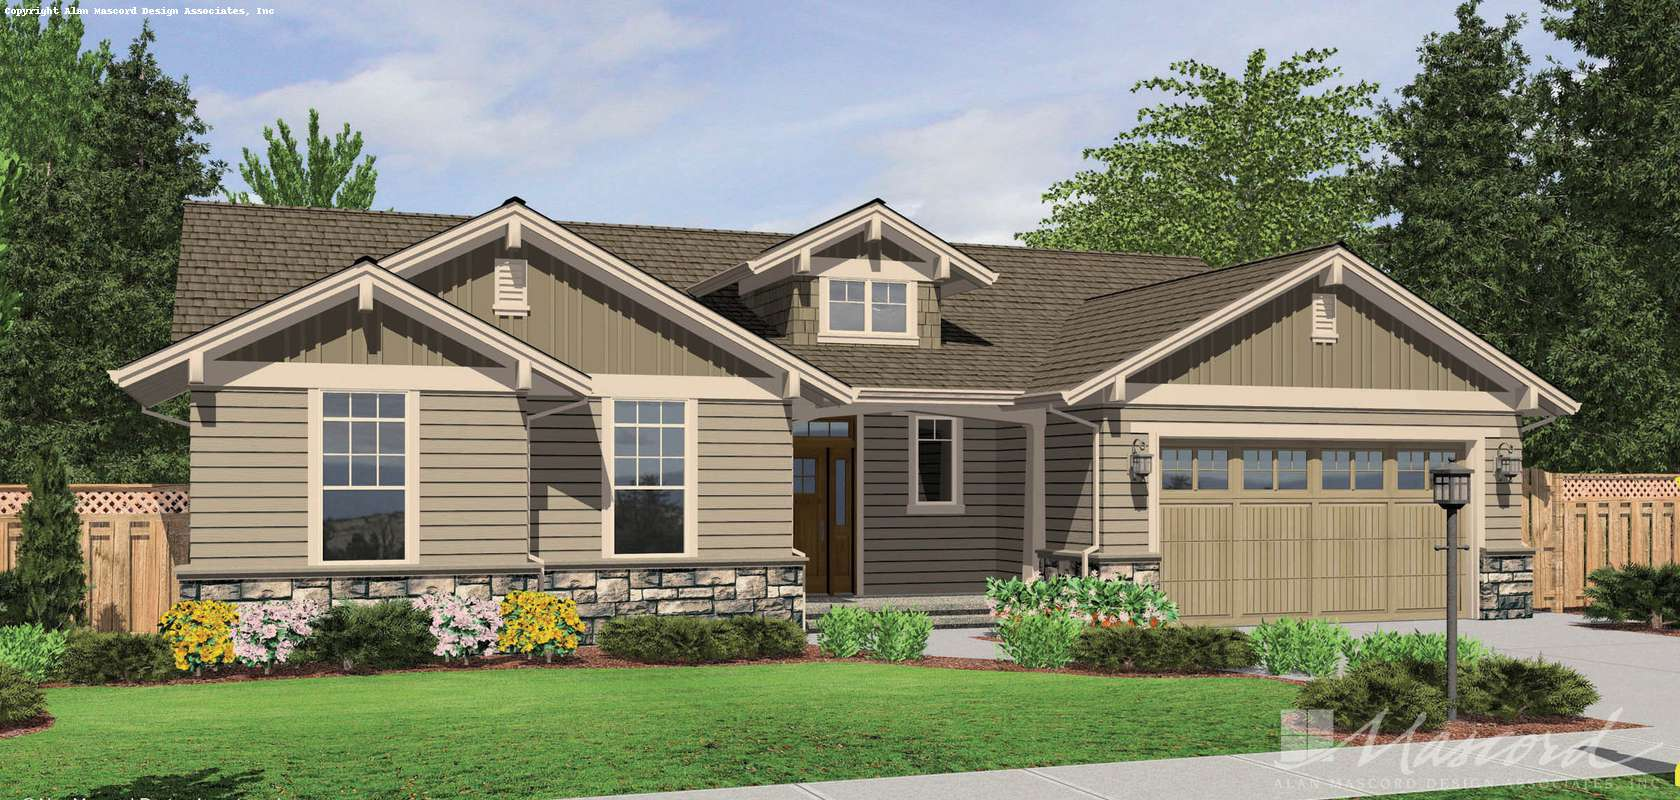 Mascord House Plan 1149C: The Avondale